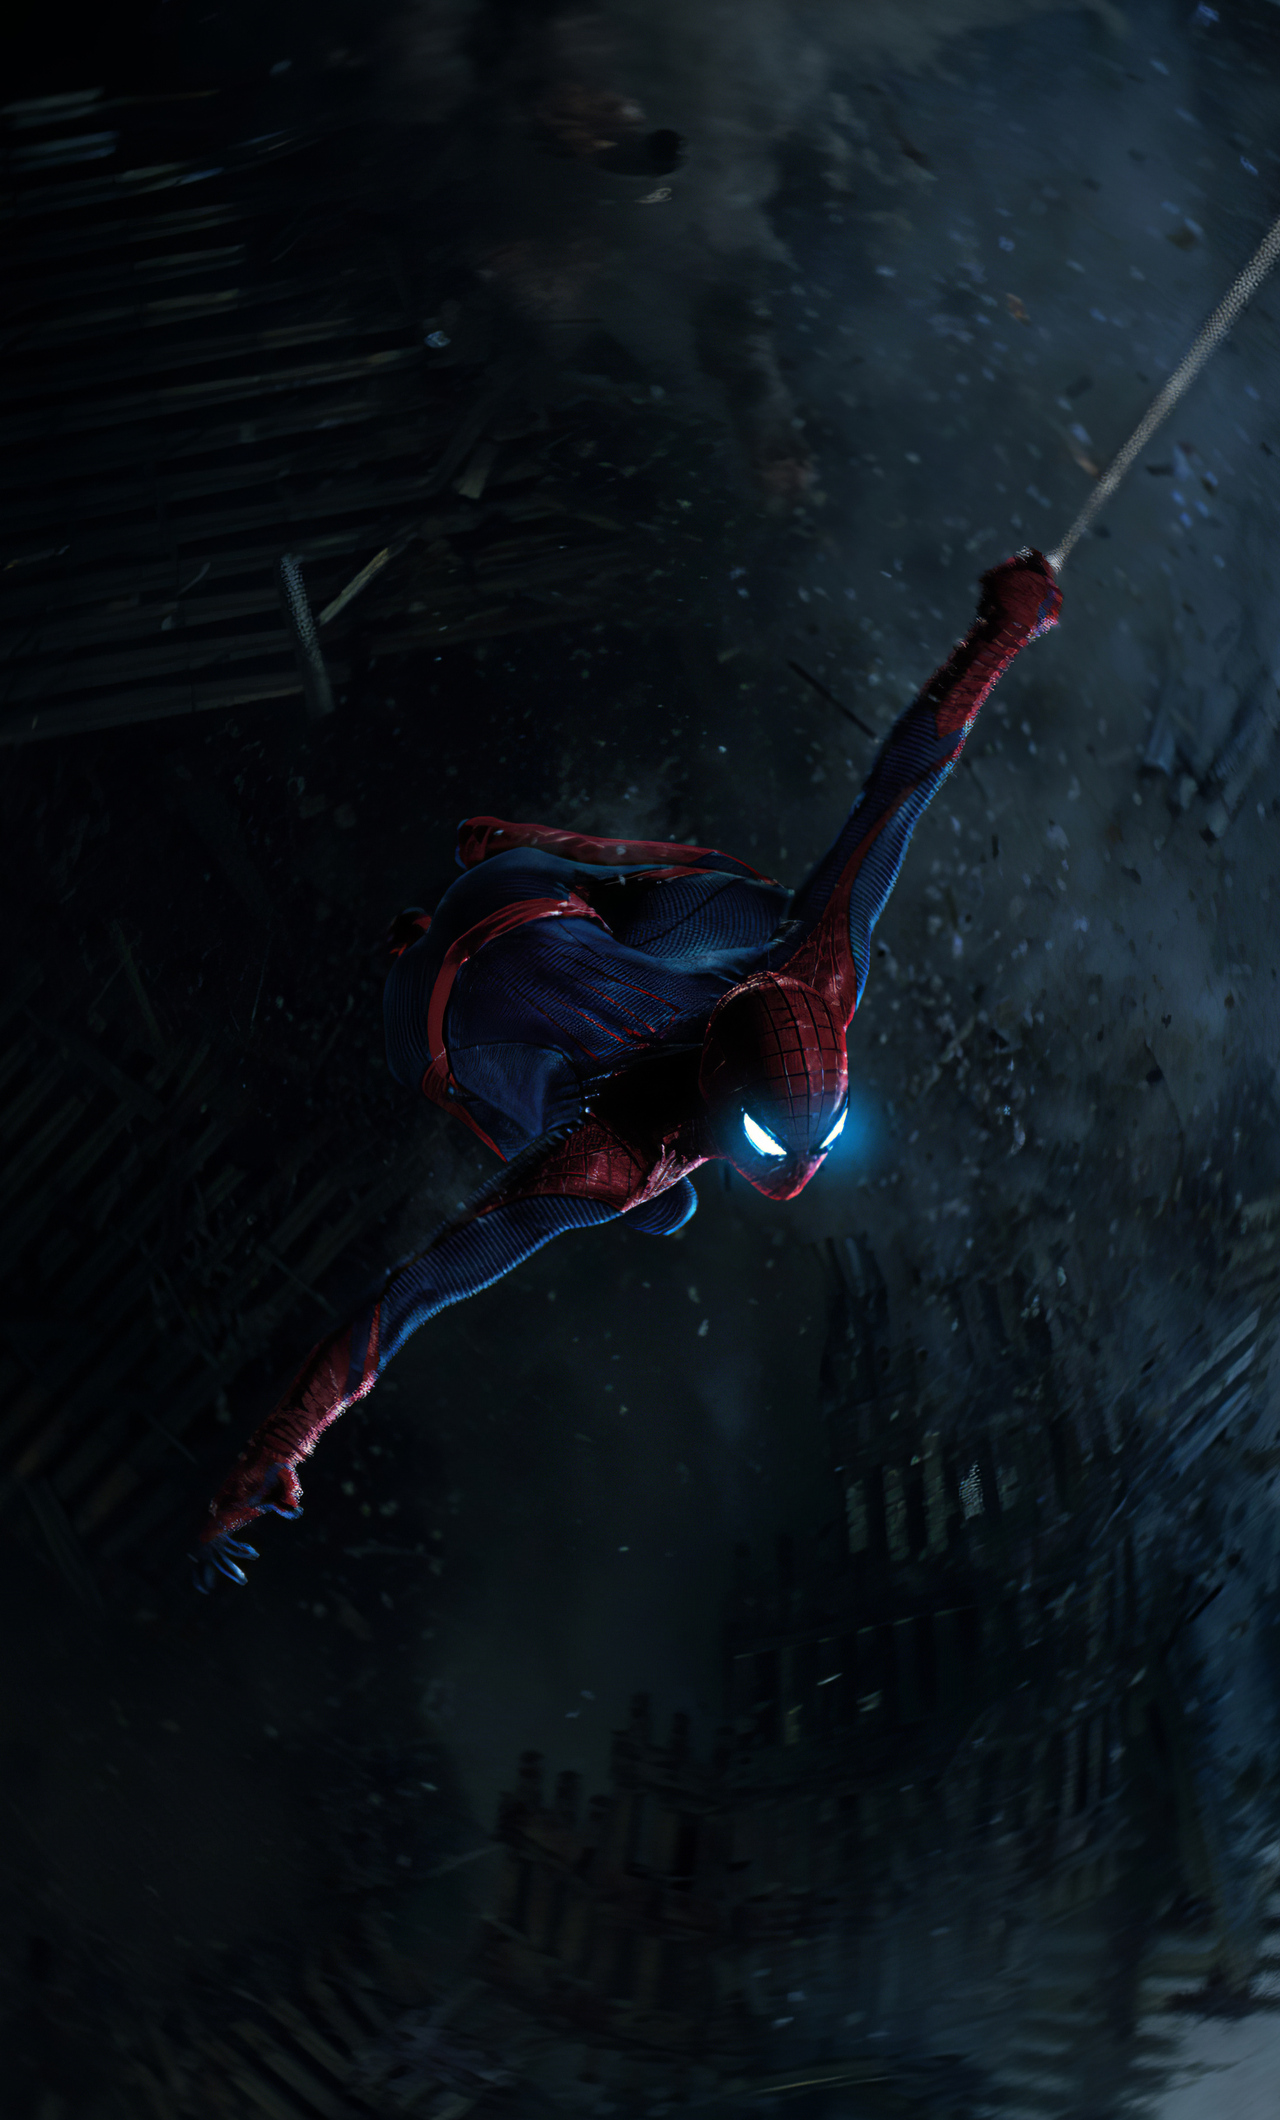 spiderman-night-hq.jpg